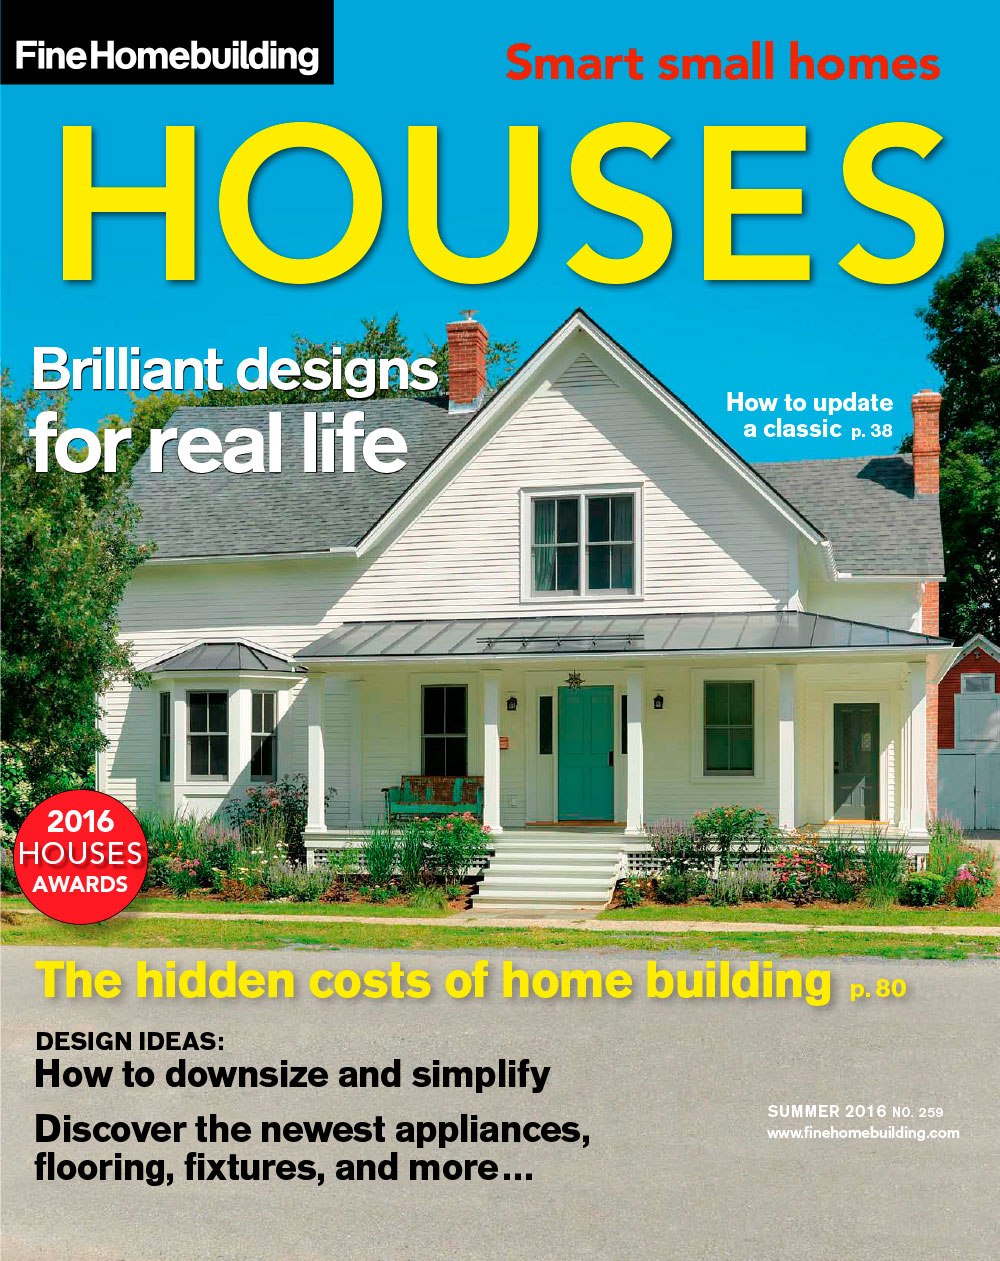 Issue 259 U2013 HOUSES 2016